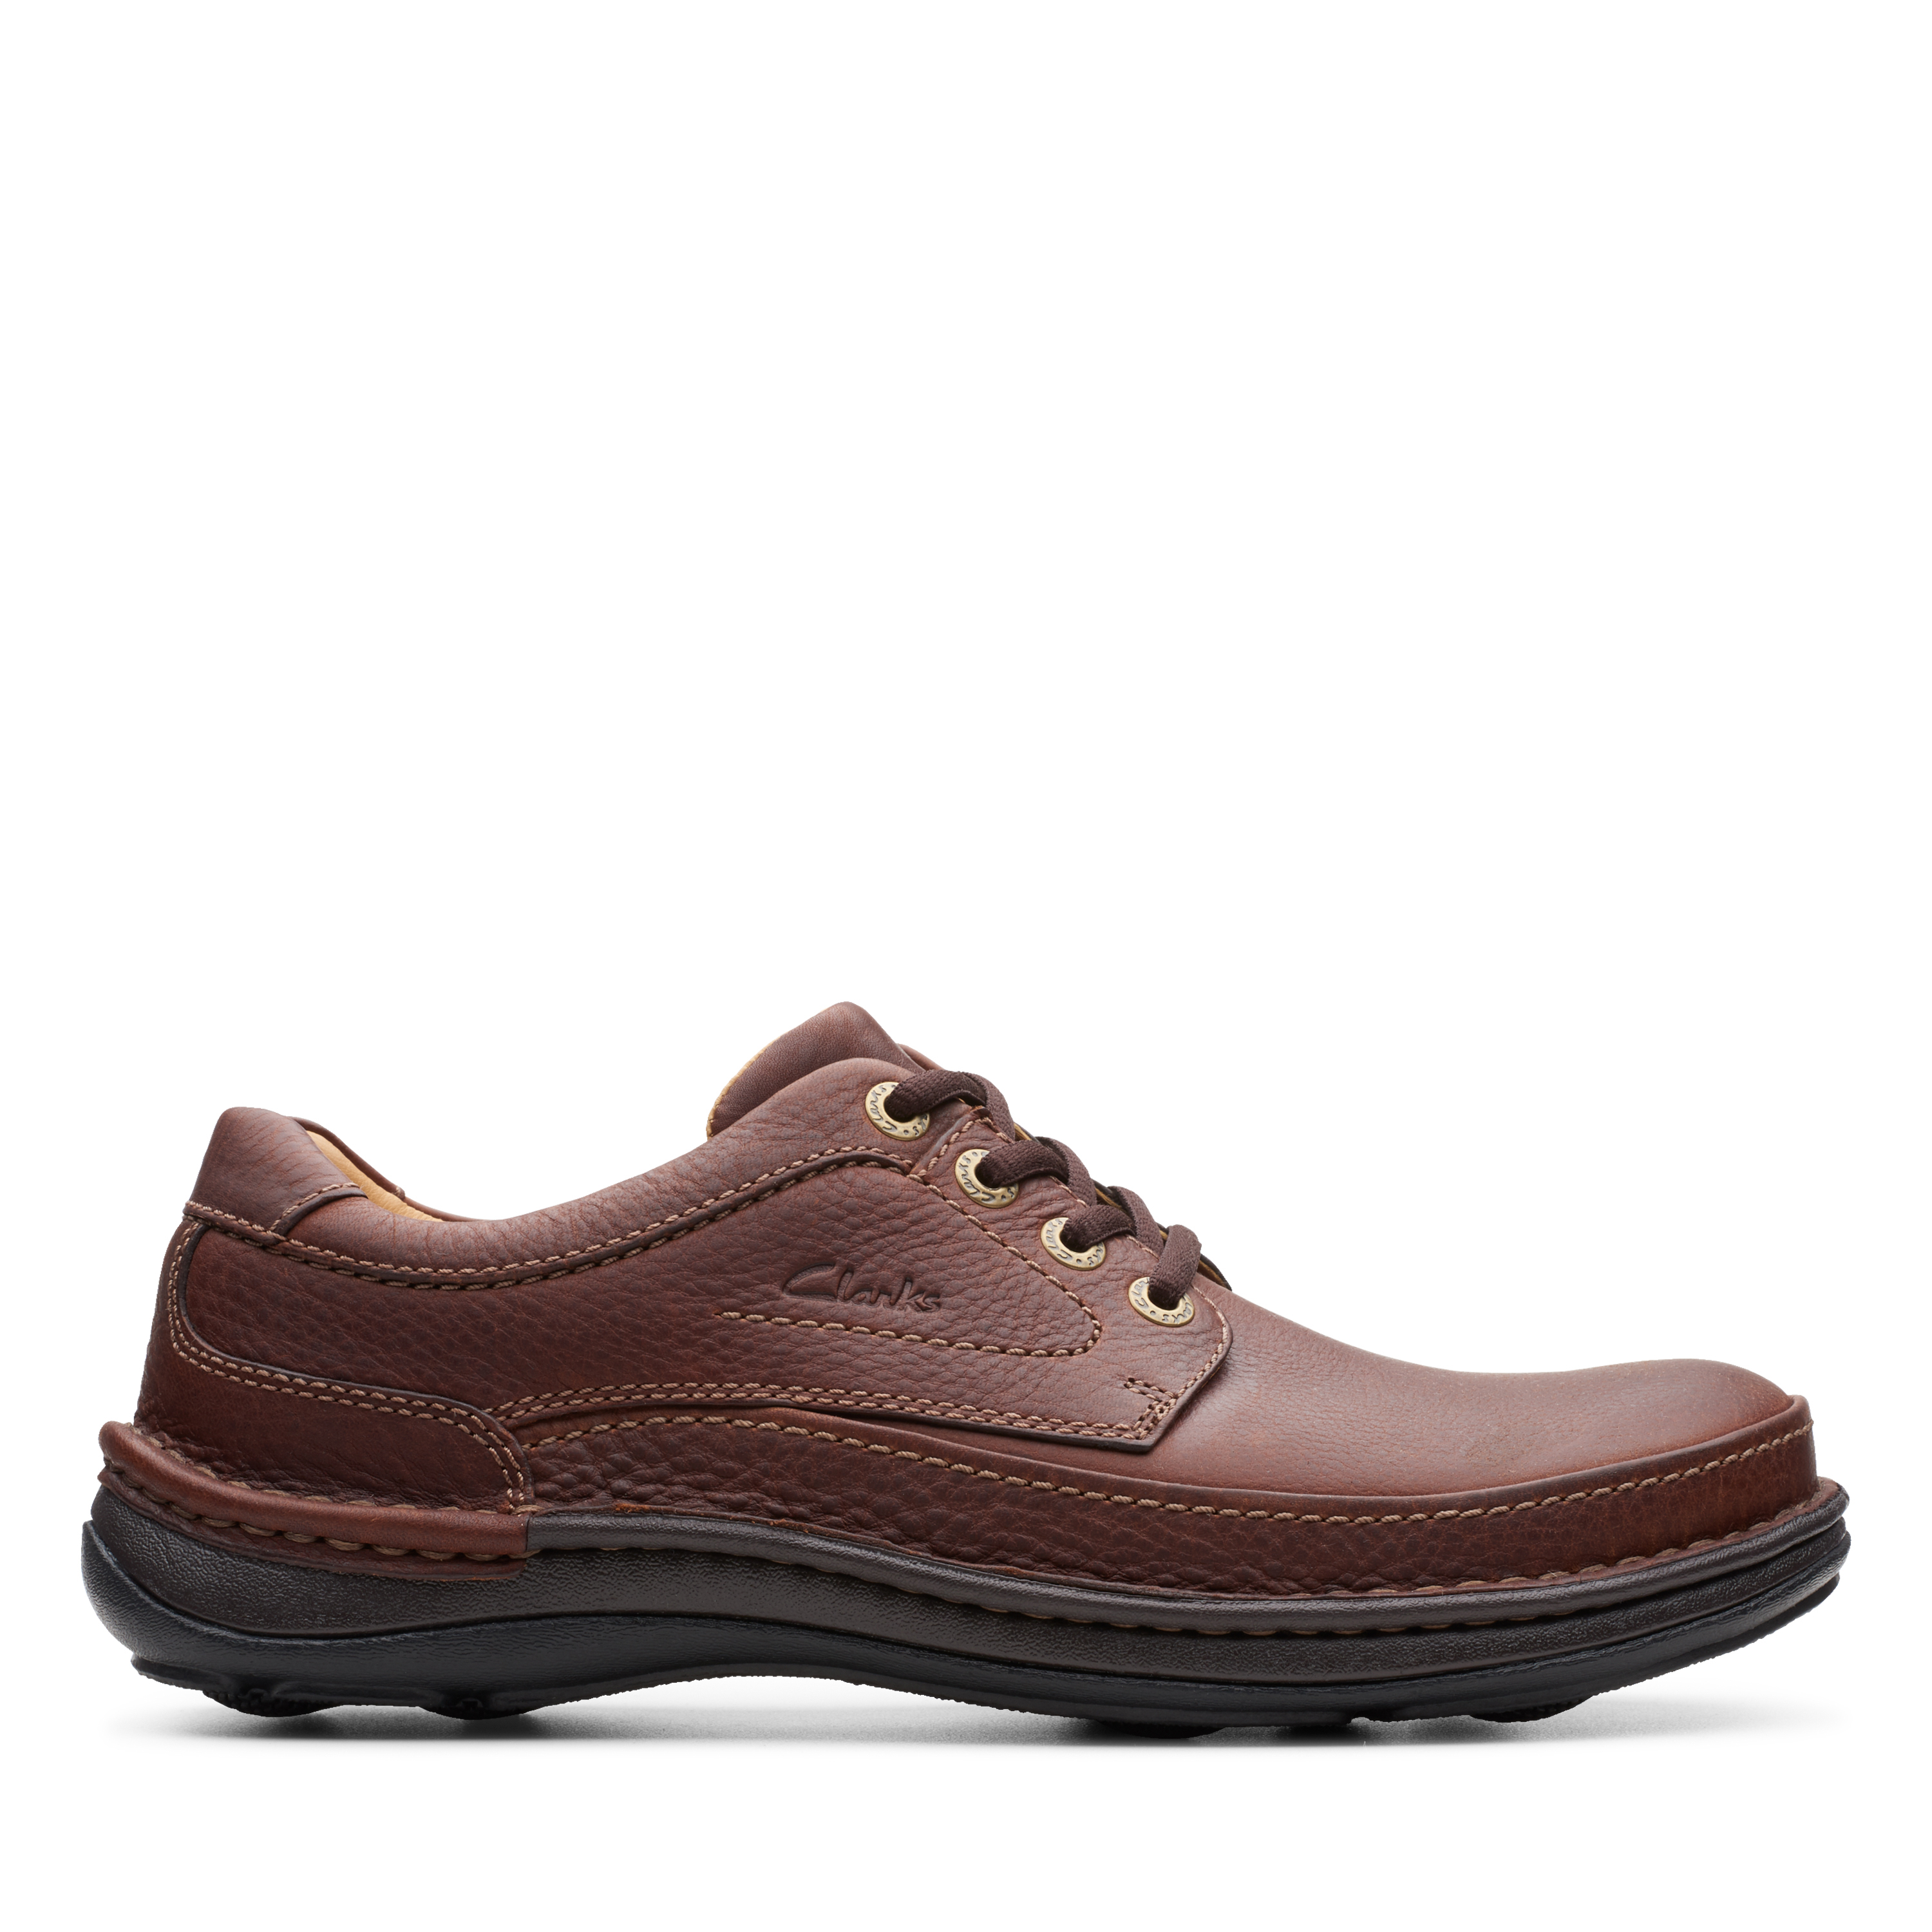 Clarks – Casual Nature Three ΑΝΔΡ.ΥΠΟΔΗΜΑ